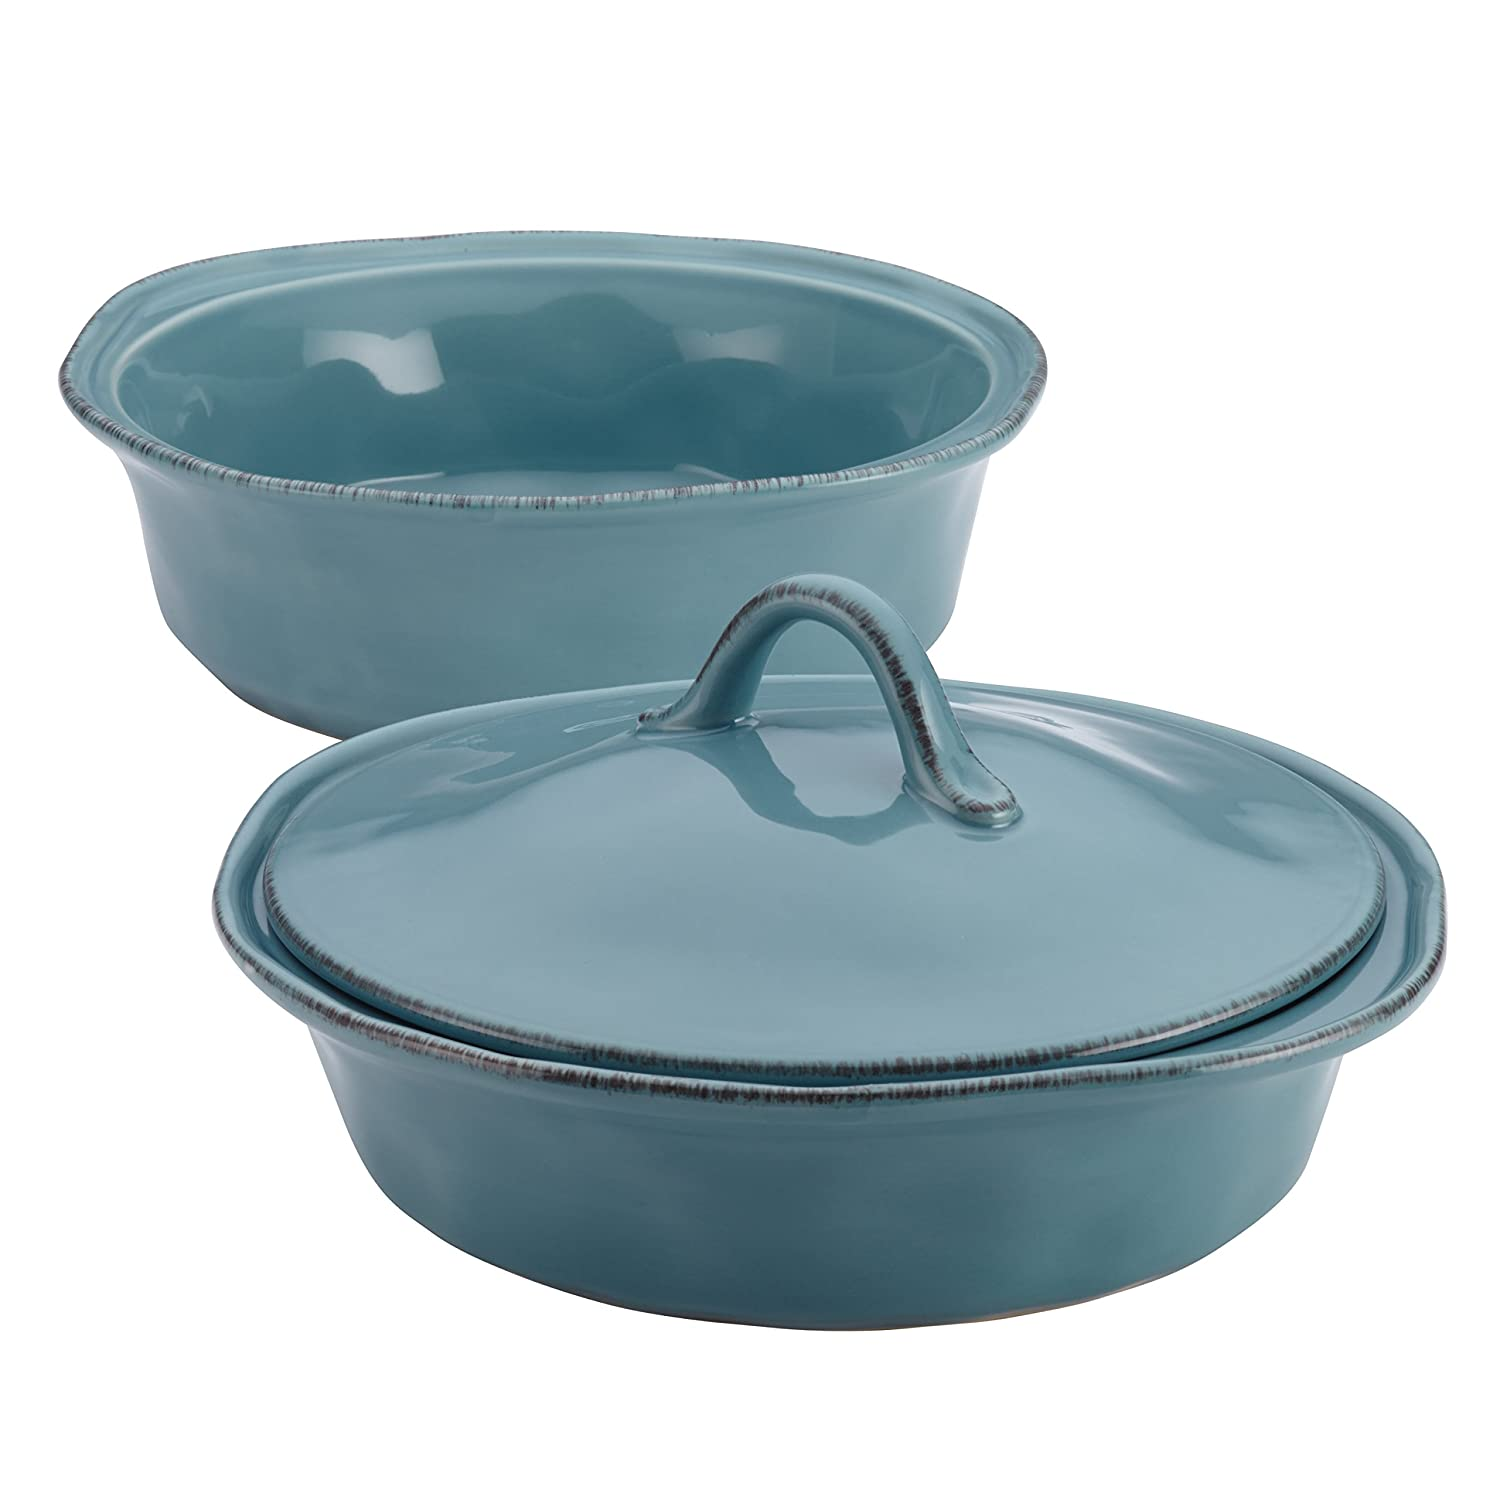 Rachael Ray Cucina Stoneware 3-Piece Round Casserole and Lid Set, Agave Blue Meyer 58314